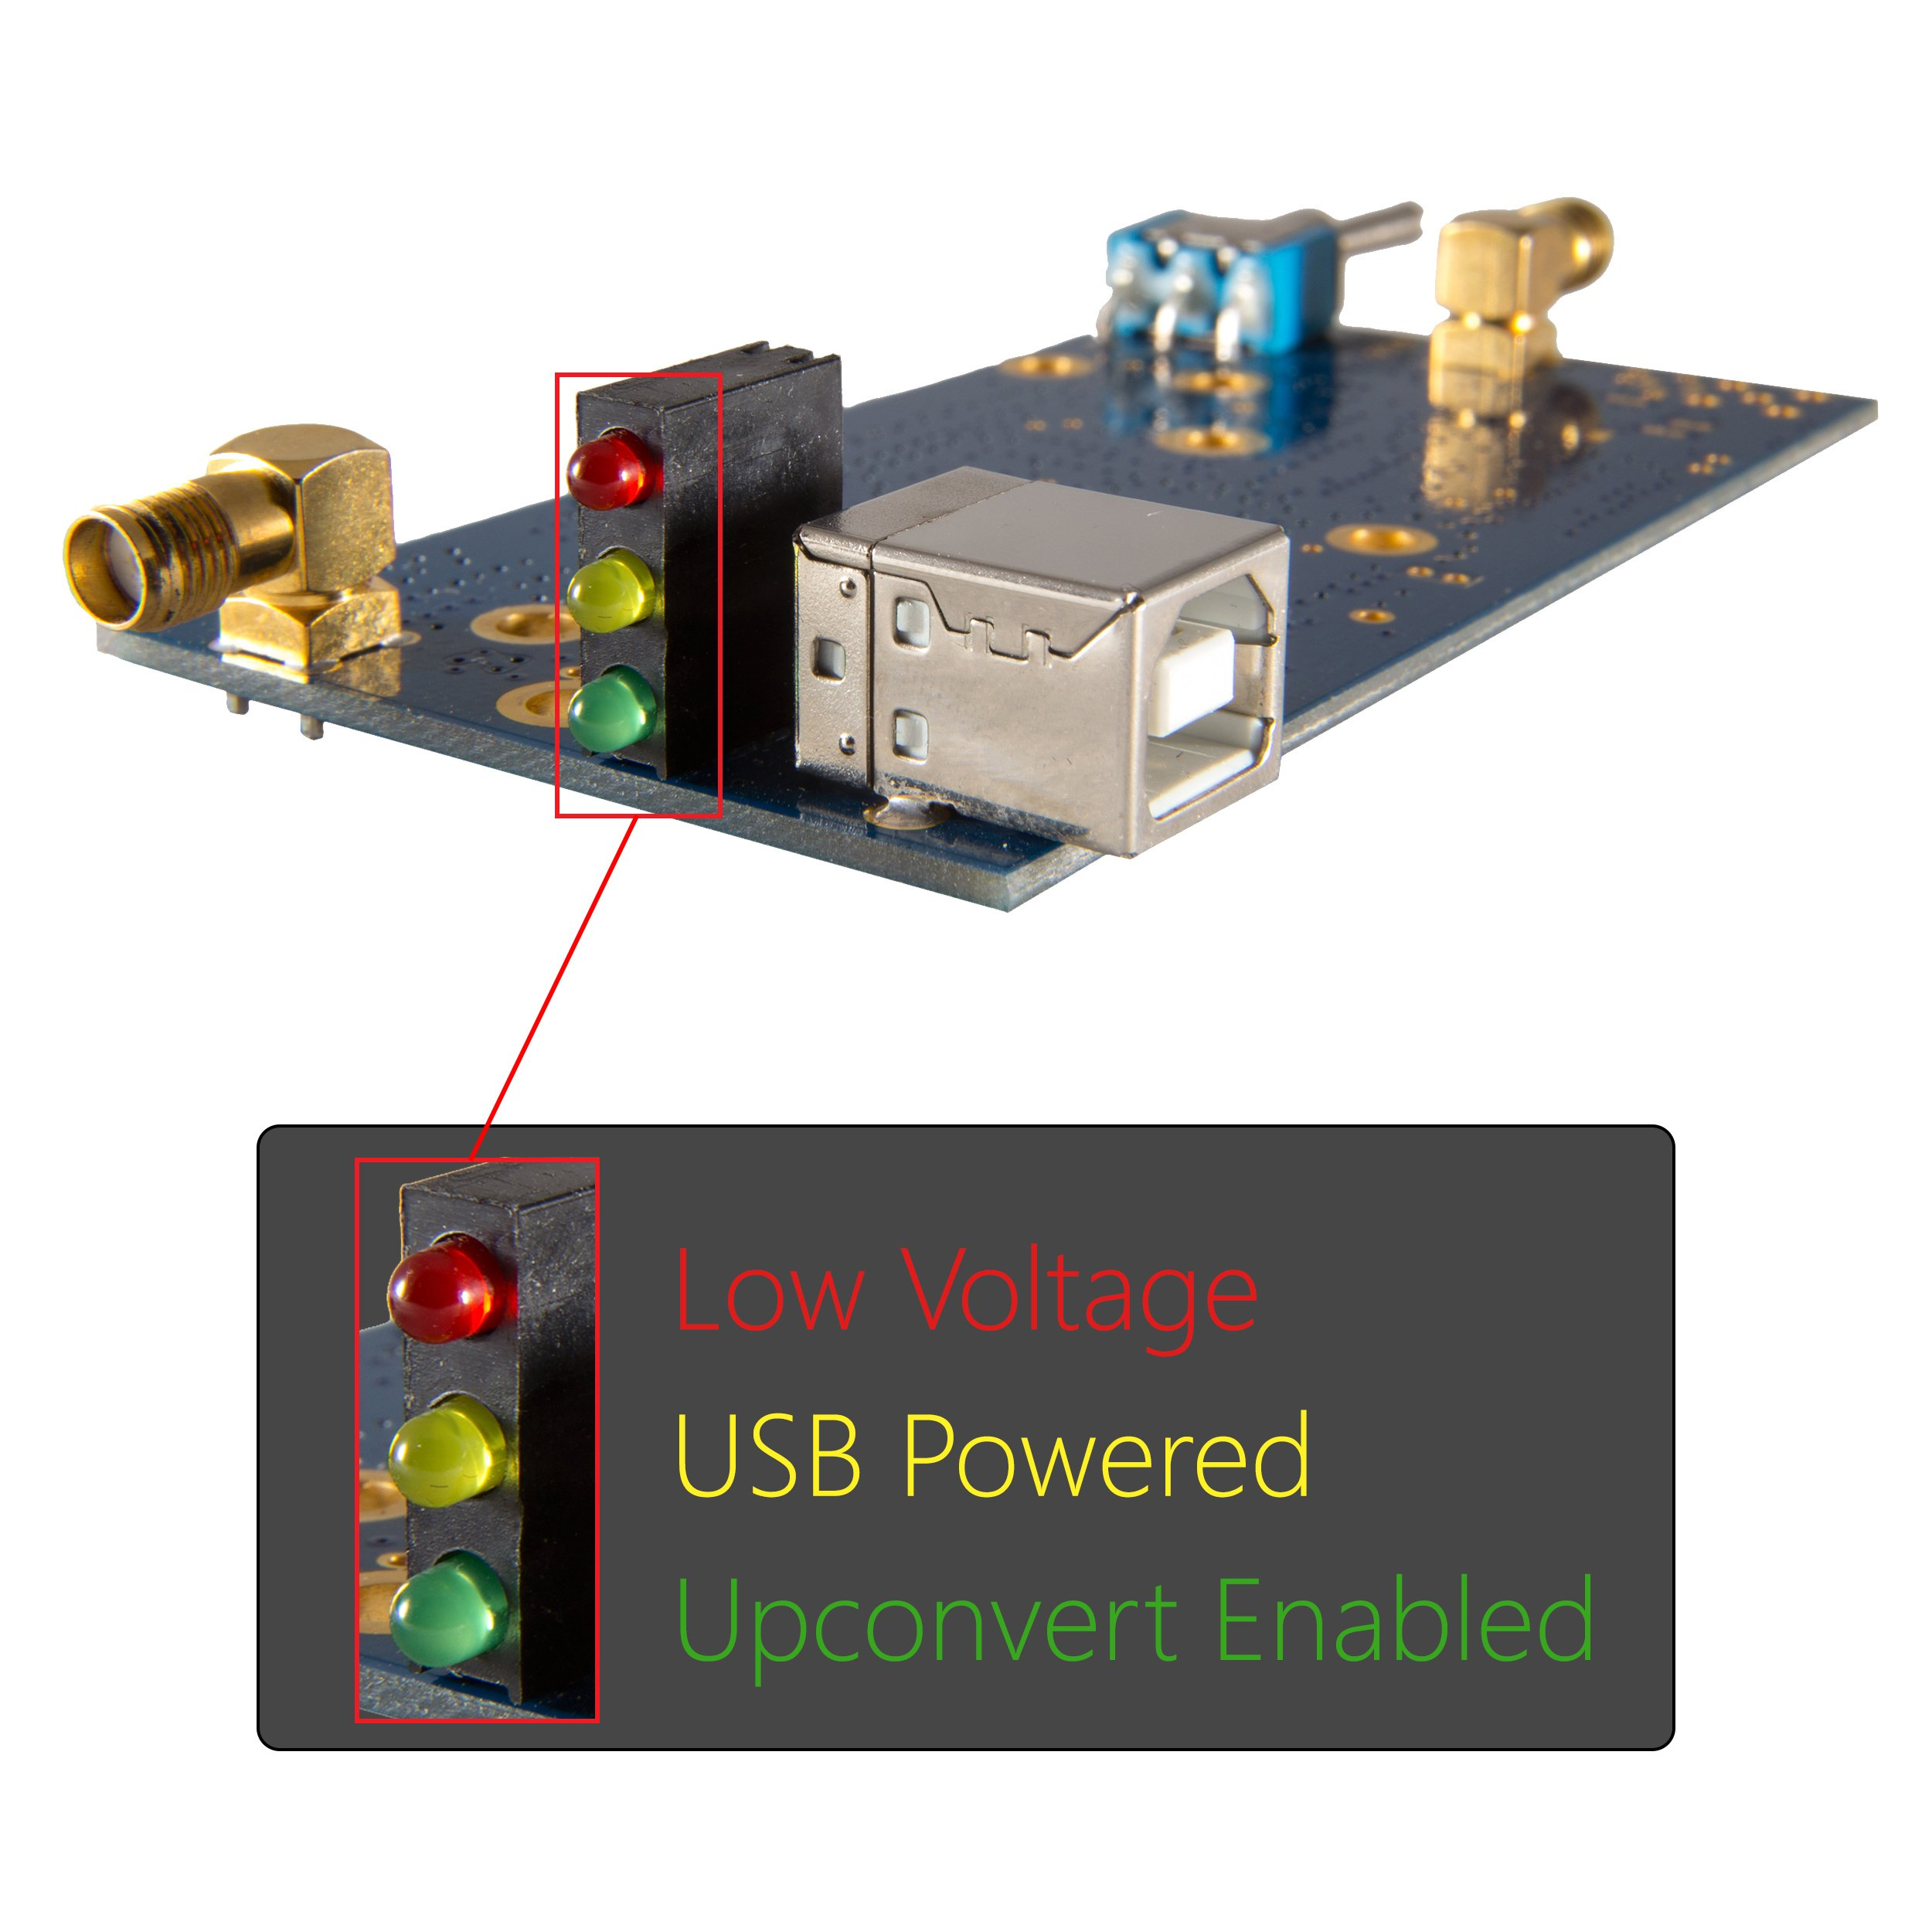 NooElec Ham It Up v1.3 - NooElec RF Upconverter for Software Defined Radio. Works with Most SDRs Like HackRF & RTL-SDR (RTL2832U with E4000, FC0013 or R820T Tuners); MF/HF Converter with SMA Jacks by NooElec